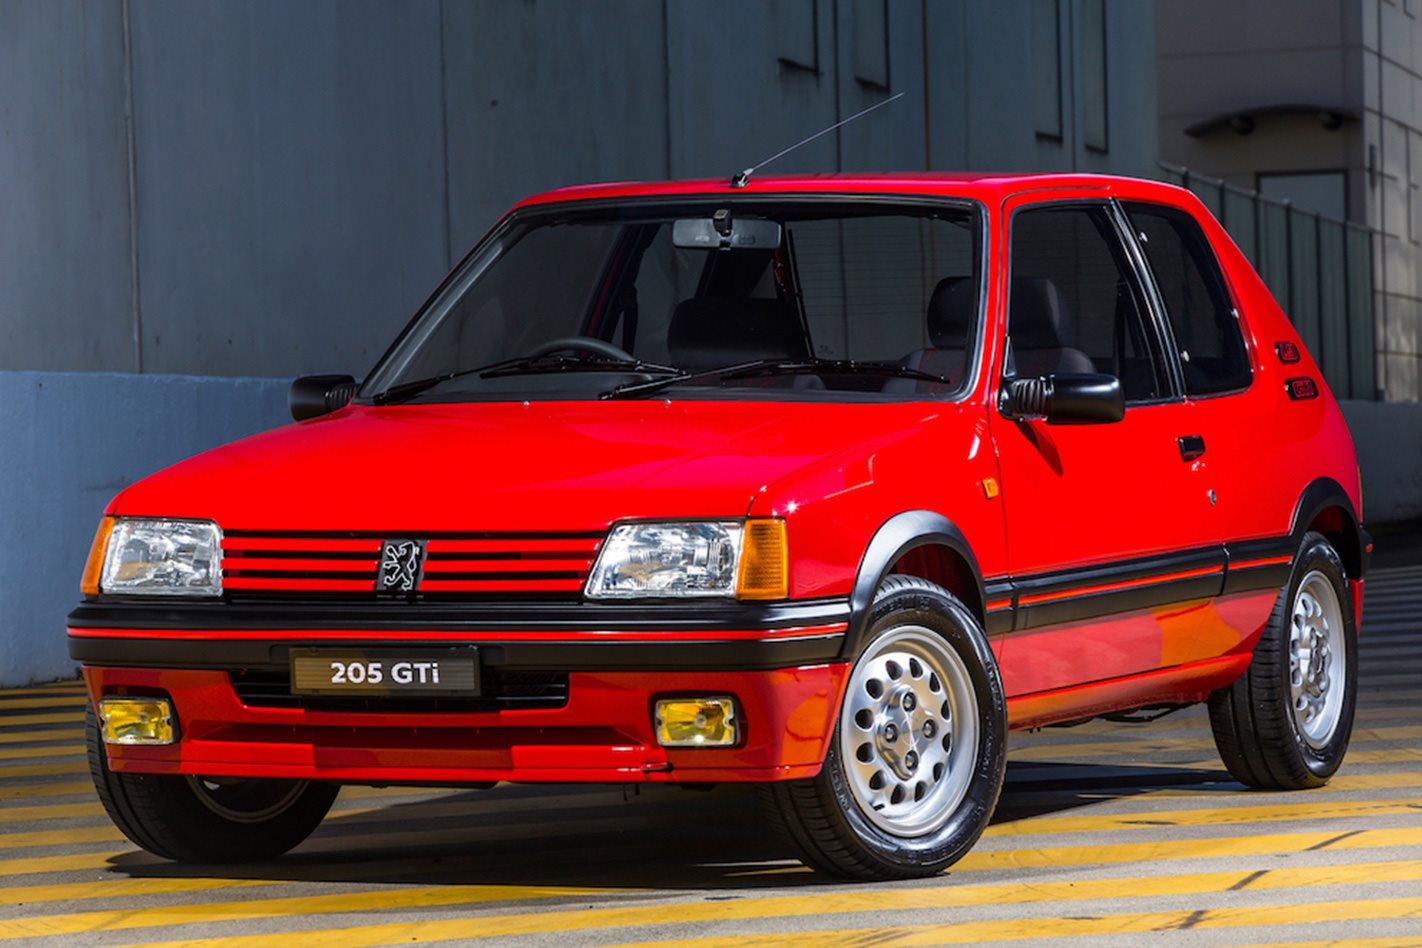 peugeot 205 gti sells for 53 000. Black Bedroom Furniture Sets. Home Design Ideas